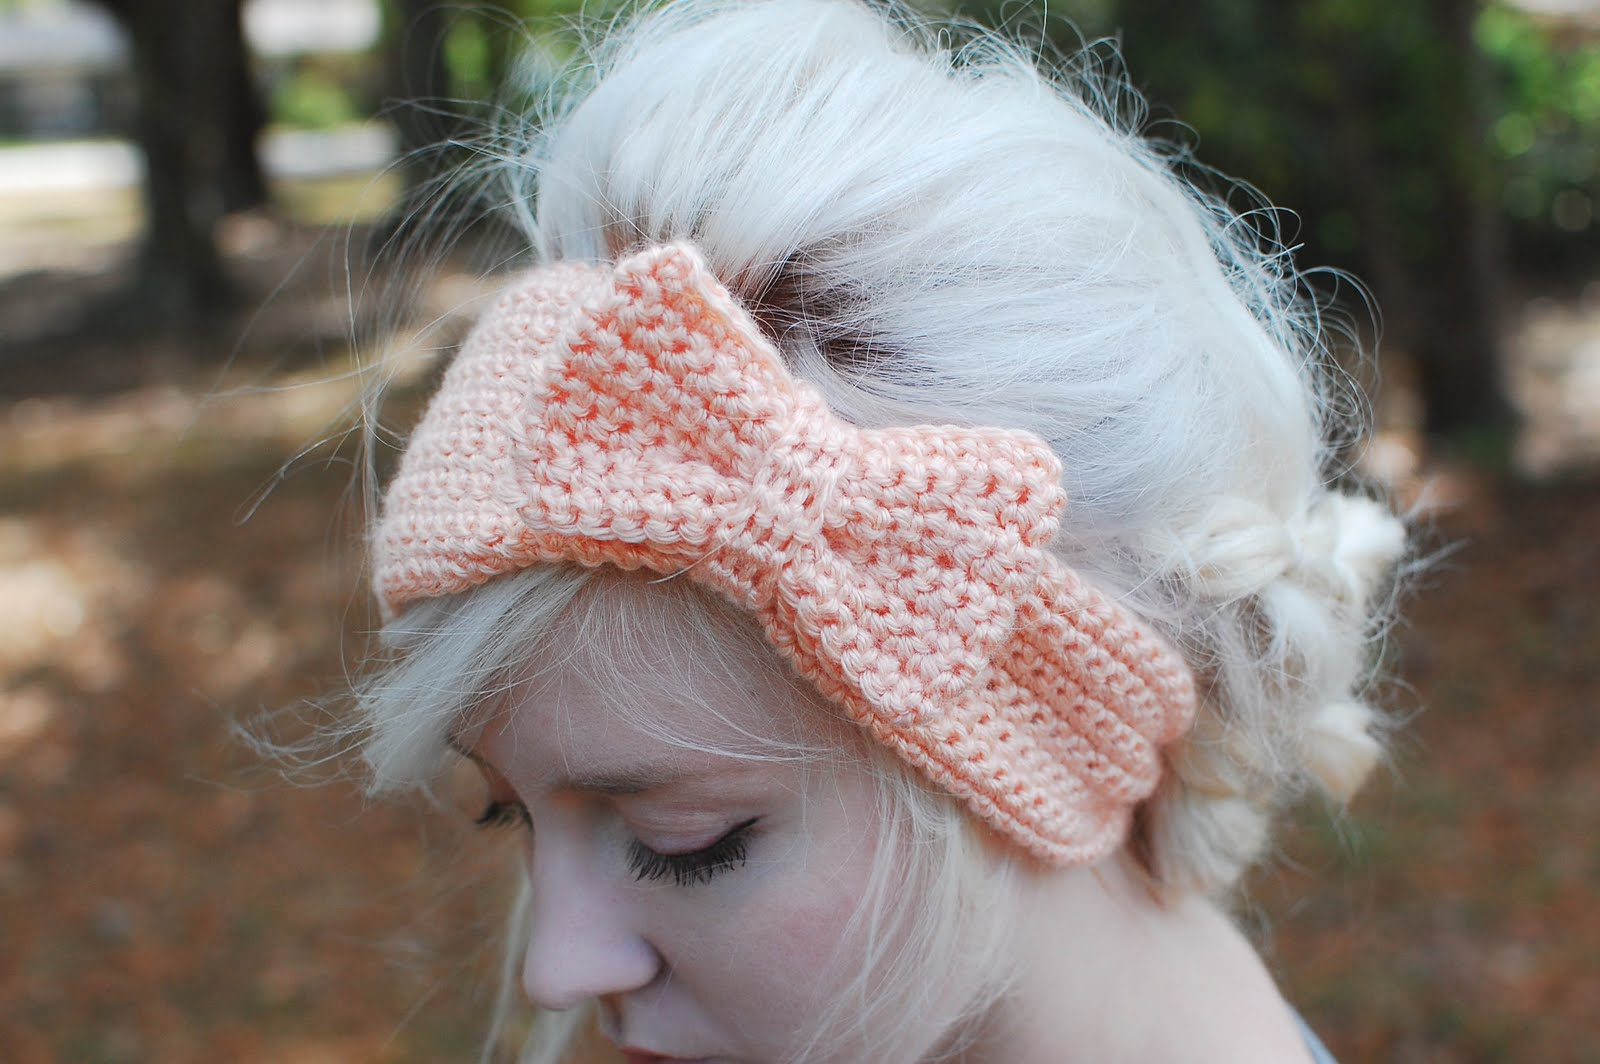 Crochet Tutorial Headband : people webs: bow headband tutorial